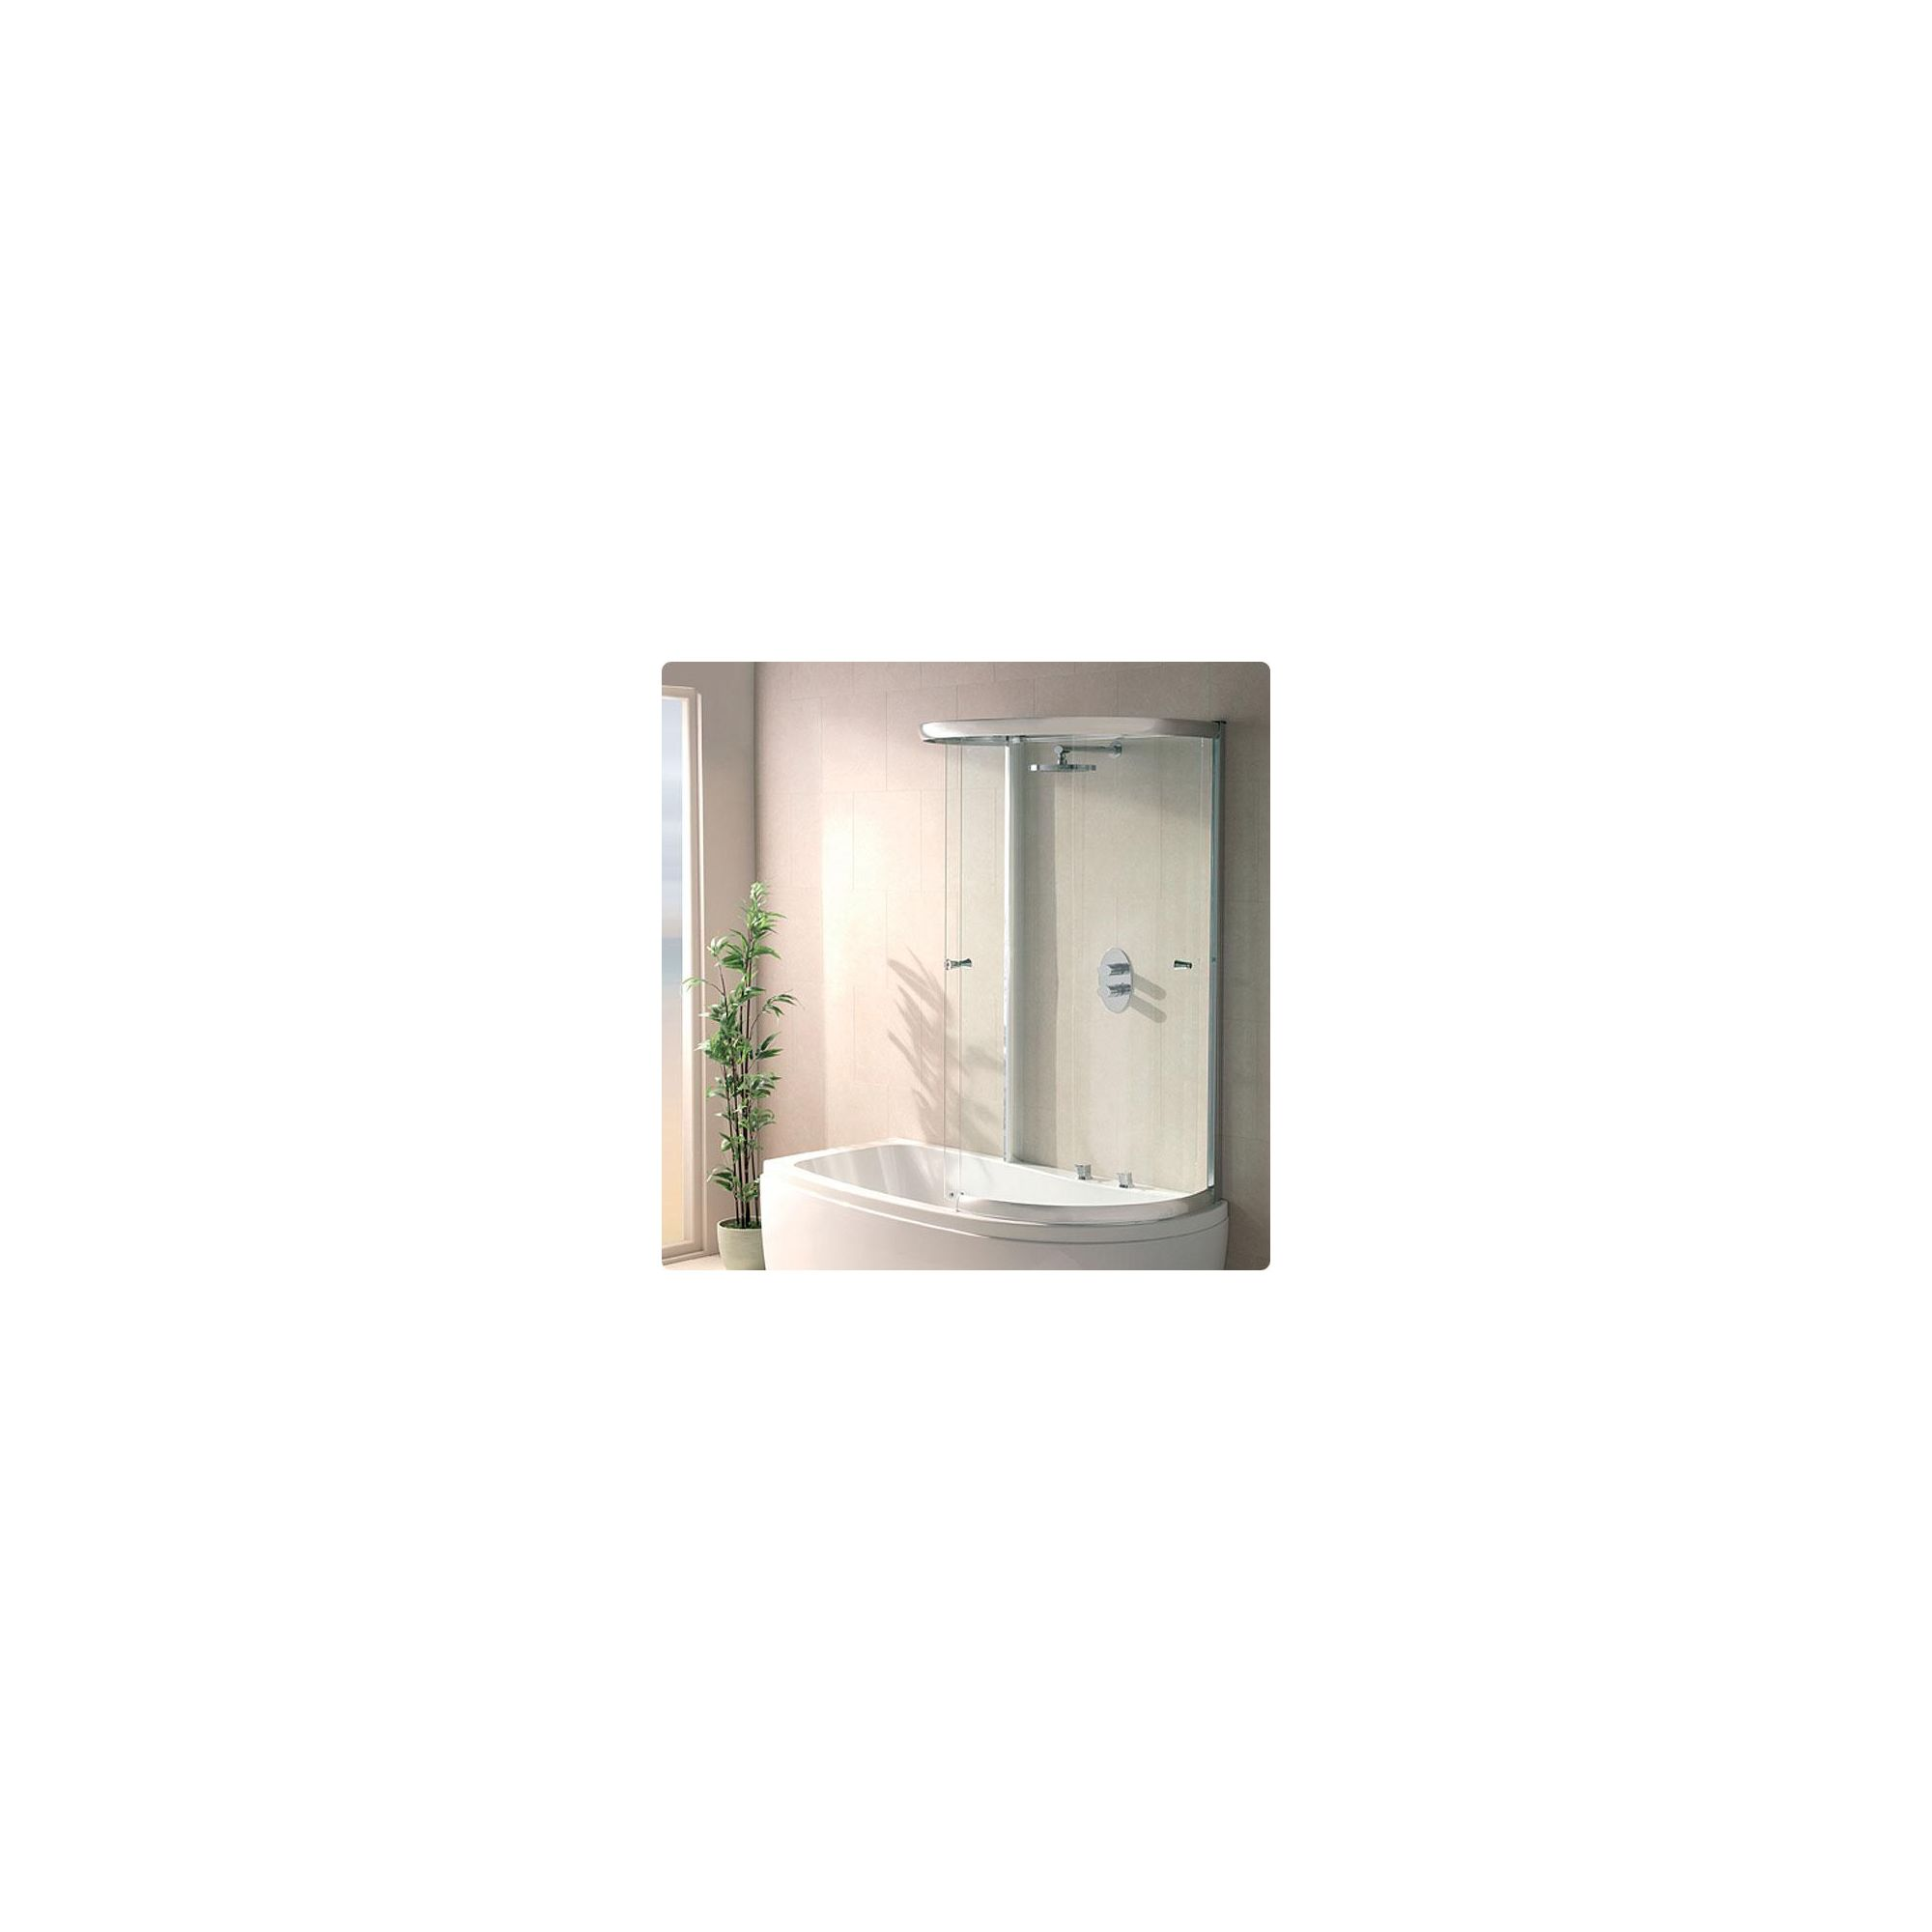 Duchy SOPHIA Curved Showerbath Bath Panel with Extending Sliding Door inside Enclosure Style Frame RIGHT HANDED with Silver Profile at Tesco Direct